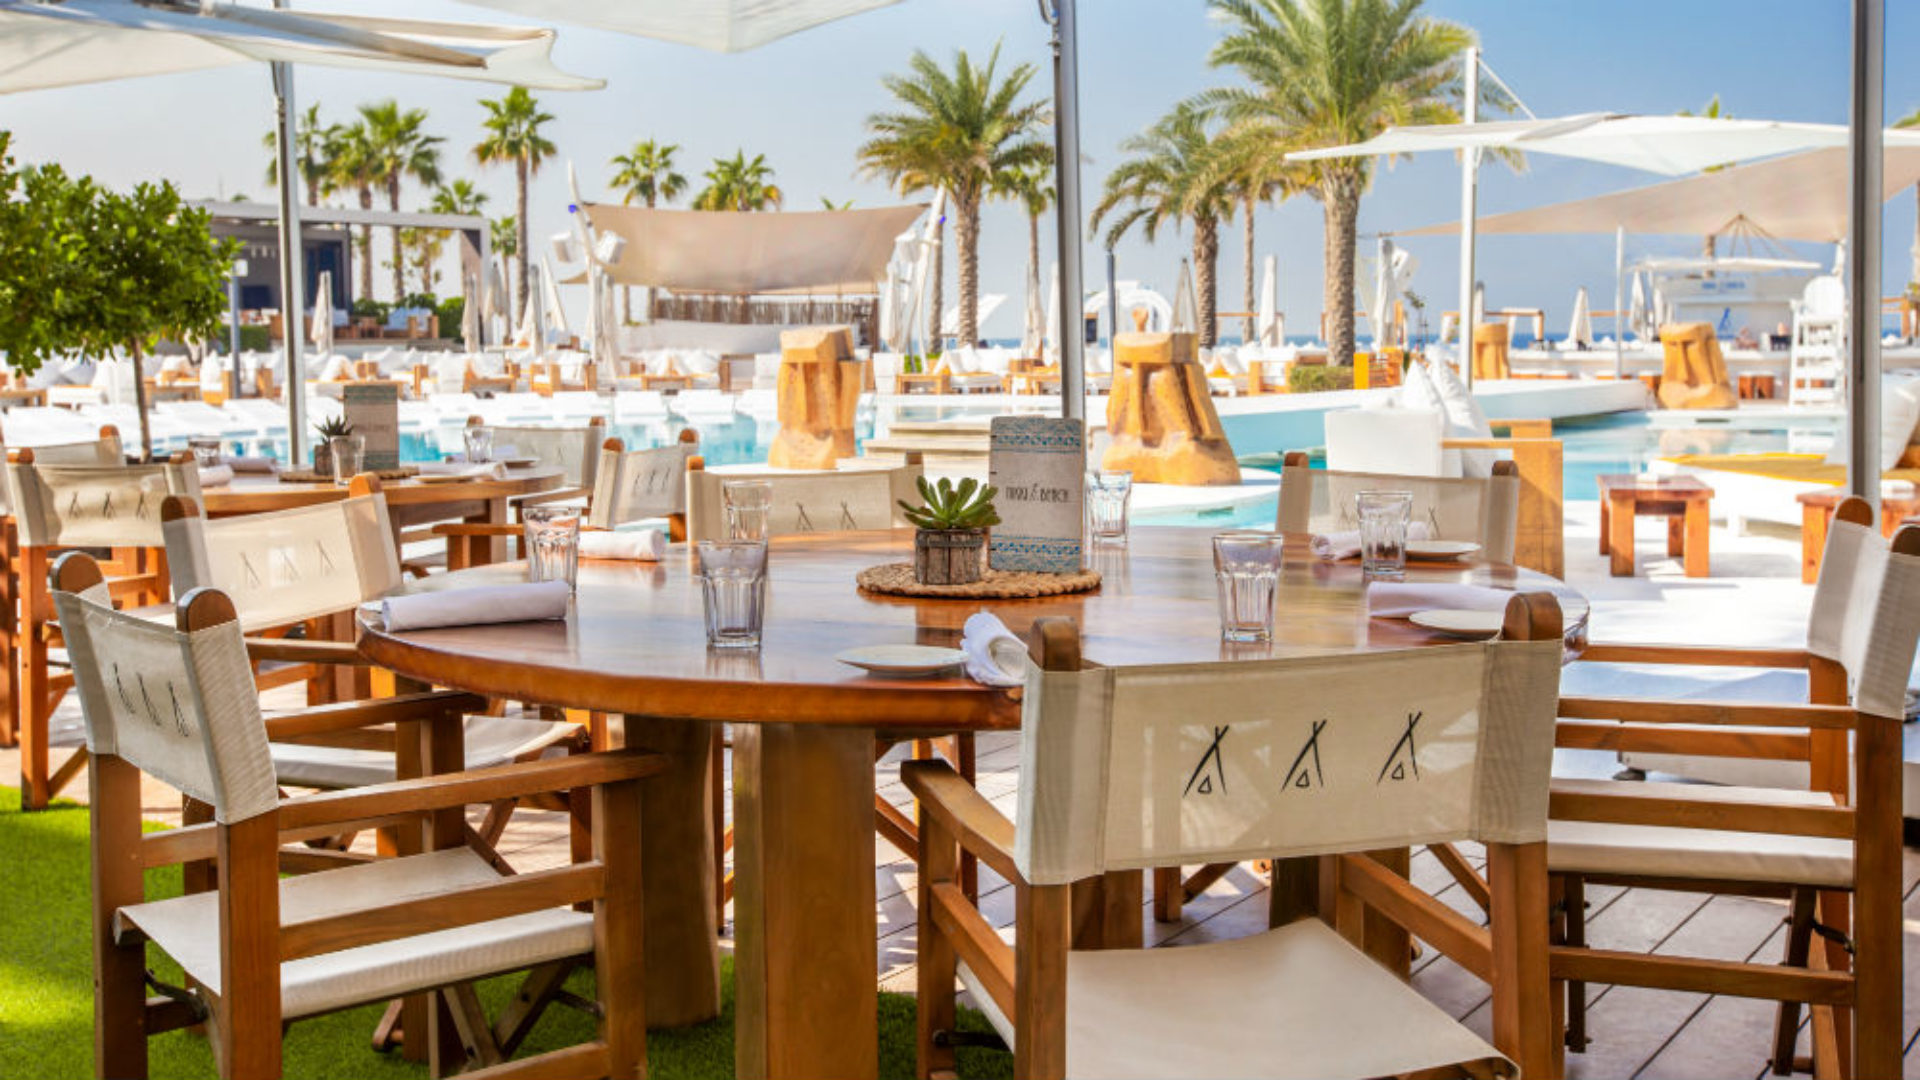 Beach Club restaurant at Nikki Beach Resort & Spa